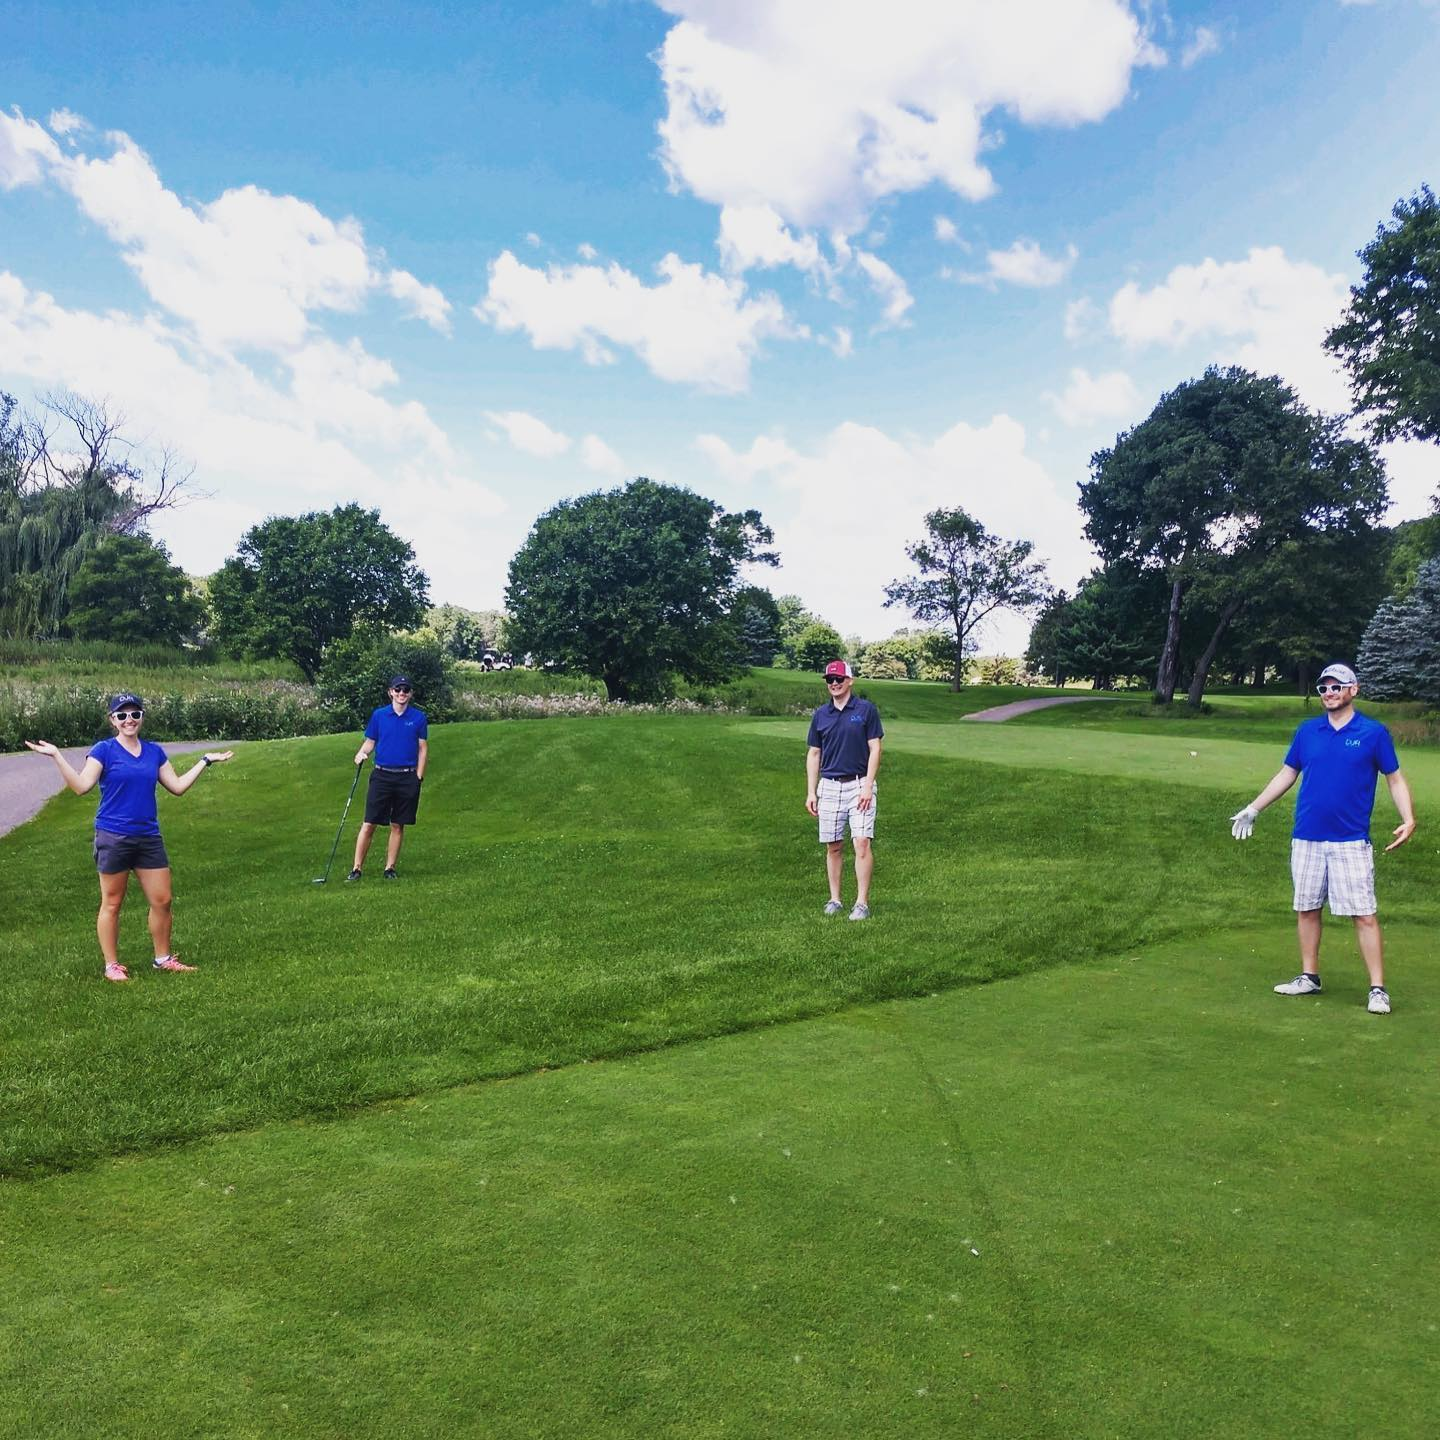 DJR players joined in with AIA MN's annual tournament on Monday to golf social-distance style. A beautiful day to gather with other architects and consultants from around the metro!•••#aiaminnesota #sixfeetapart #djrarchitecture #golf #mnsummer